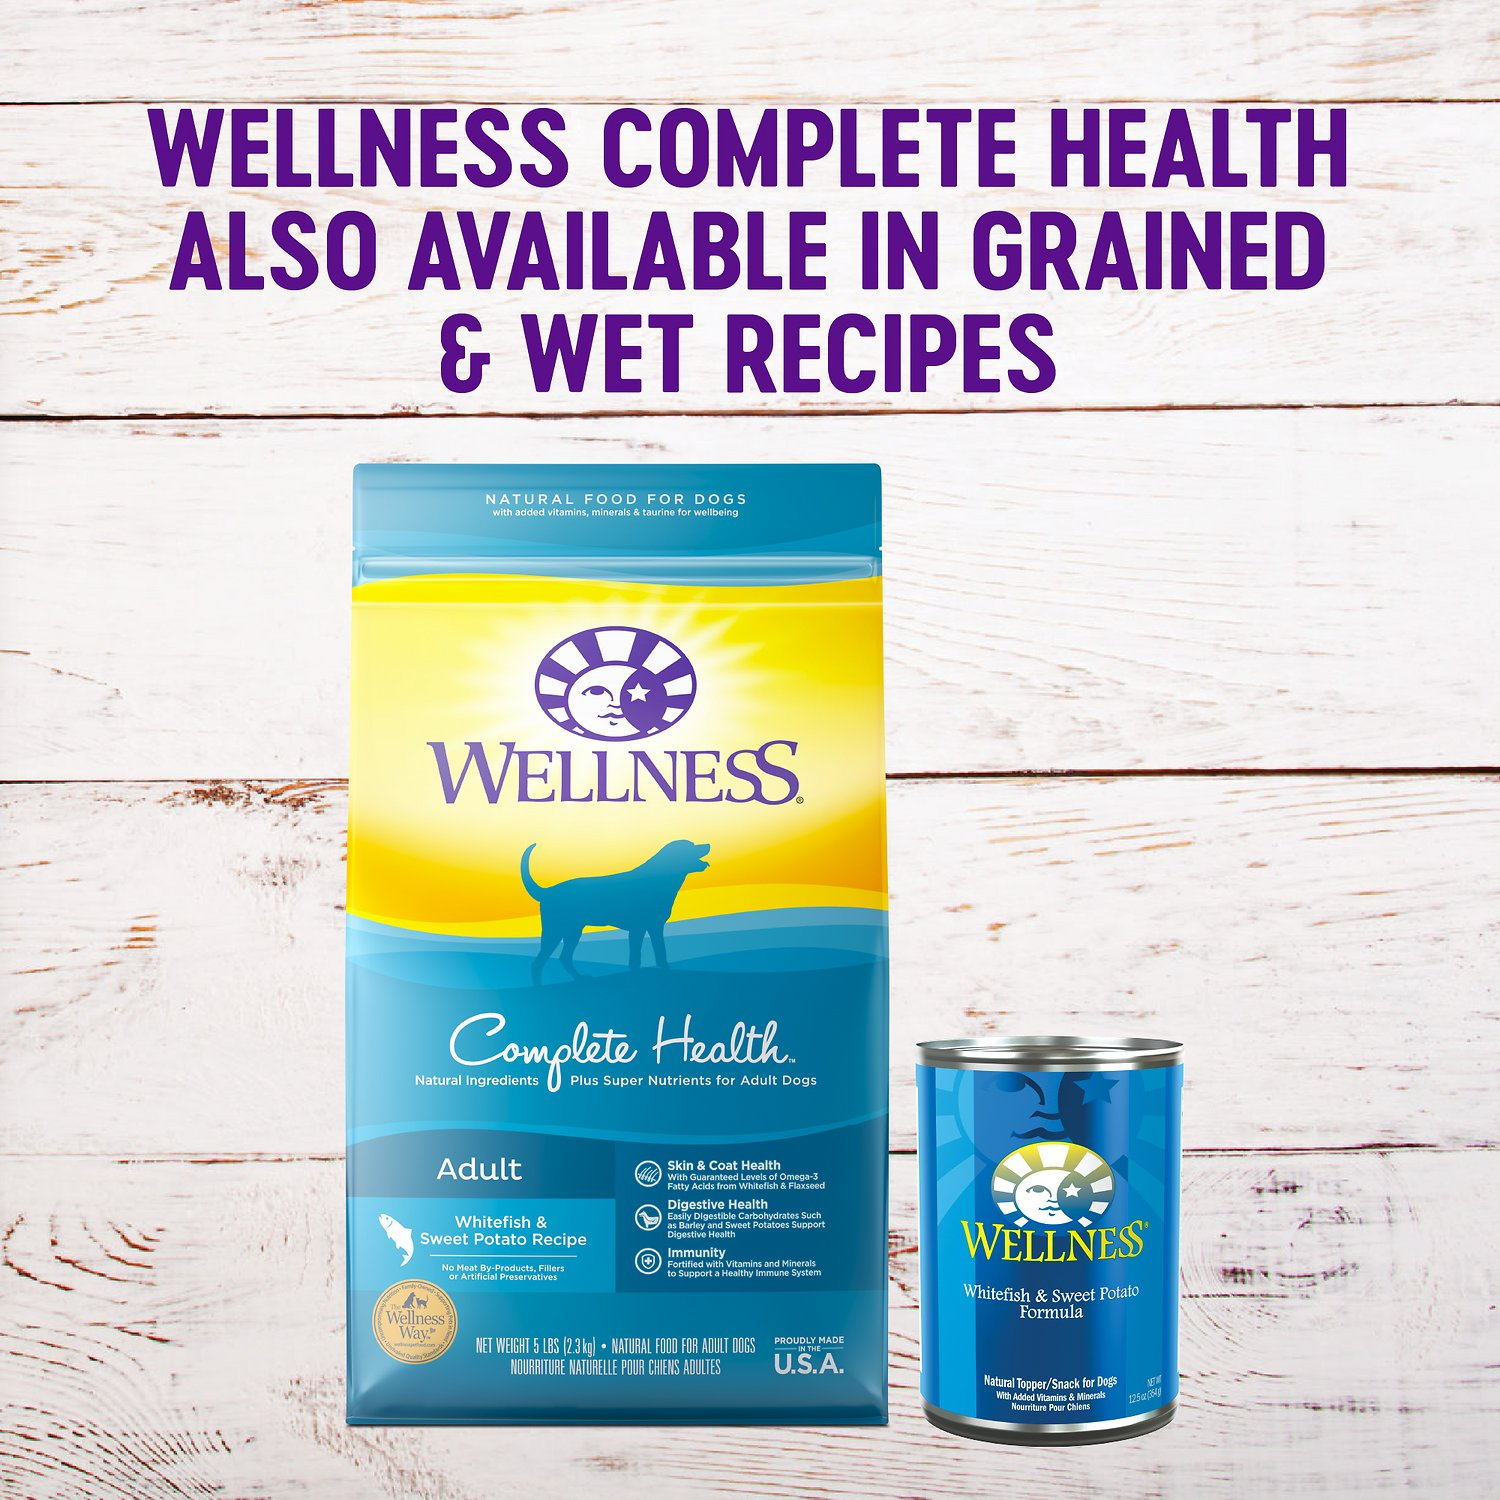 Wellness Grain Free Complete Health Adult Whitefish